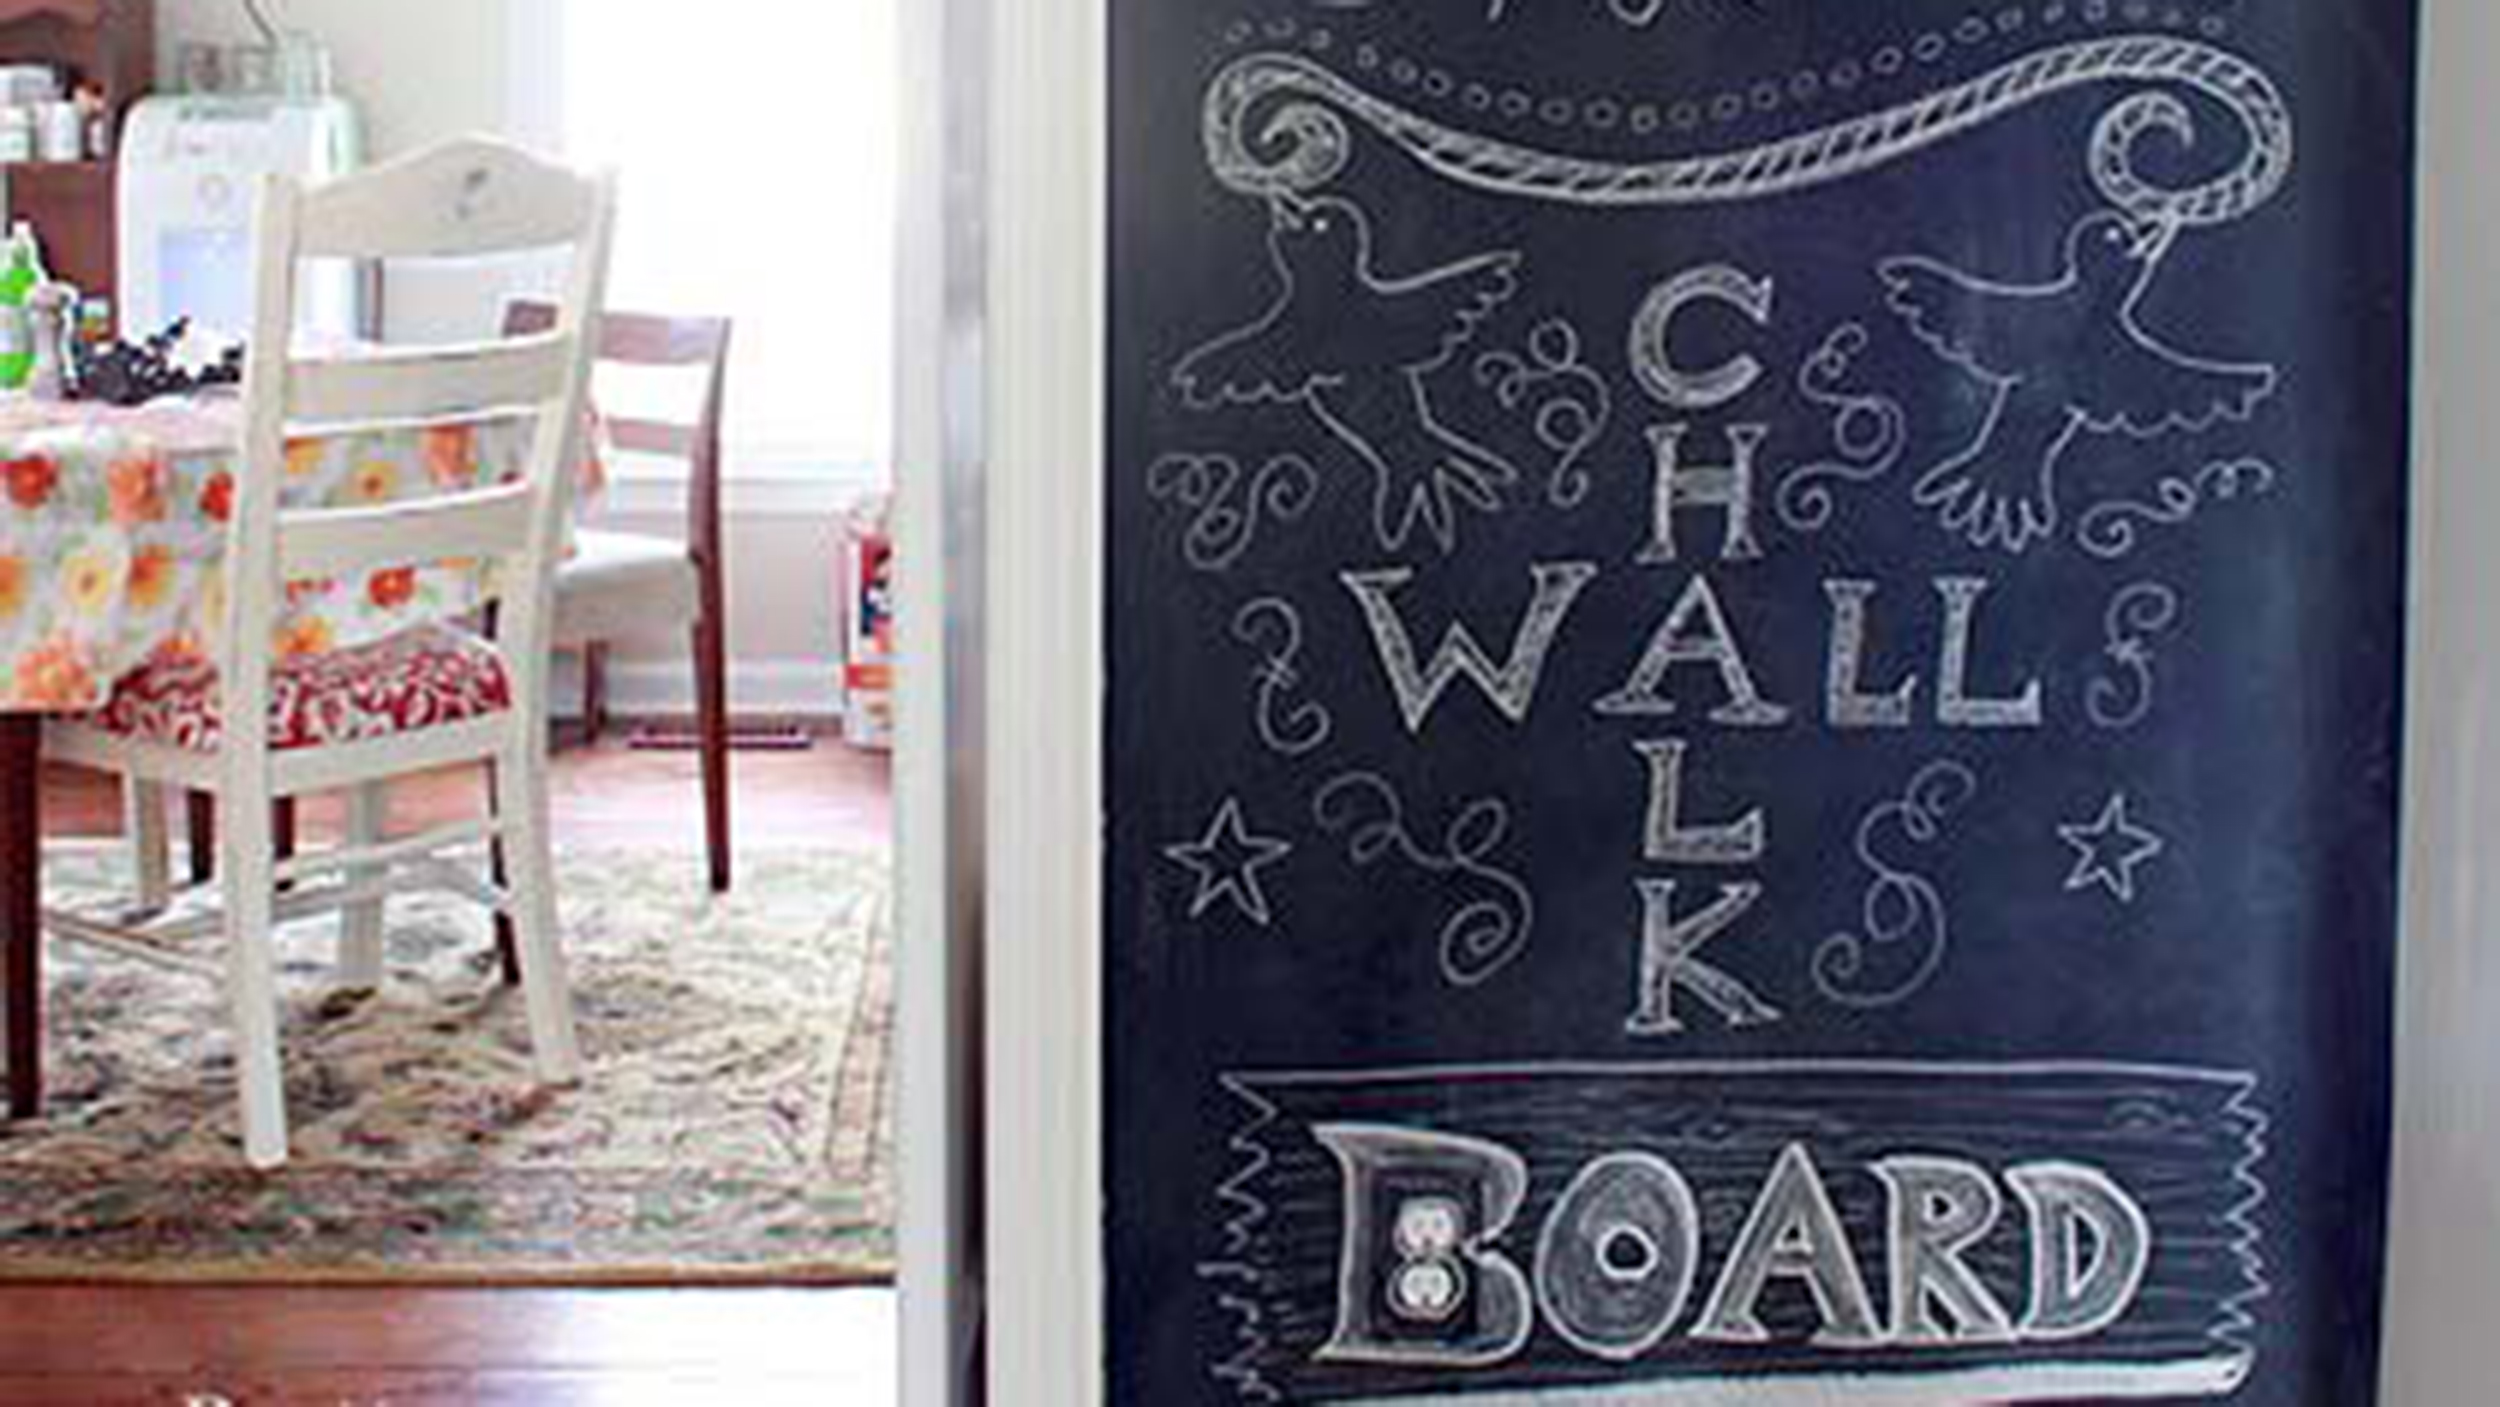 DIY chalkboard wall: What you need to know - TODAY.com